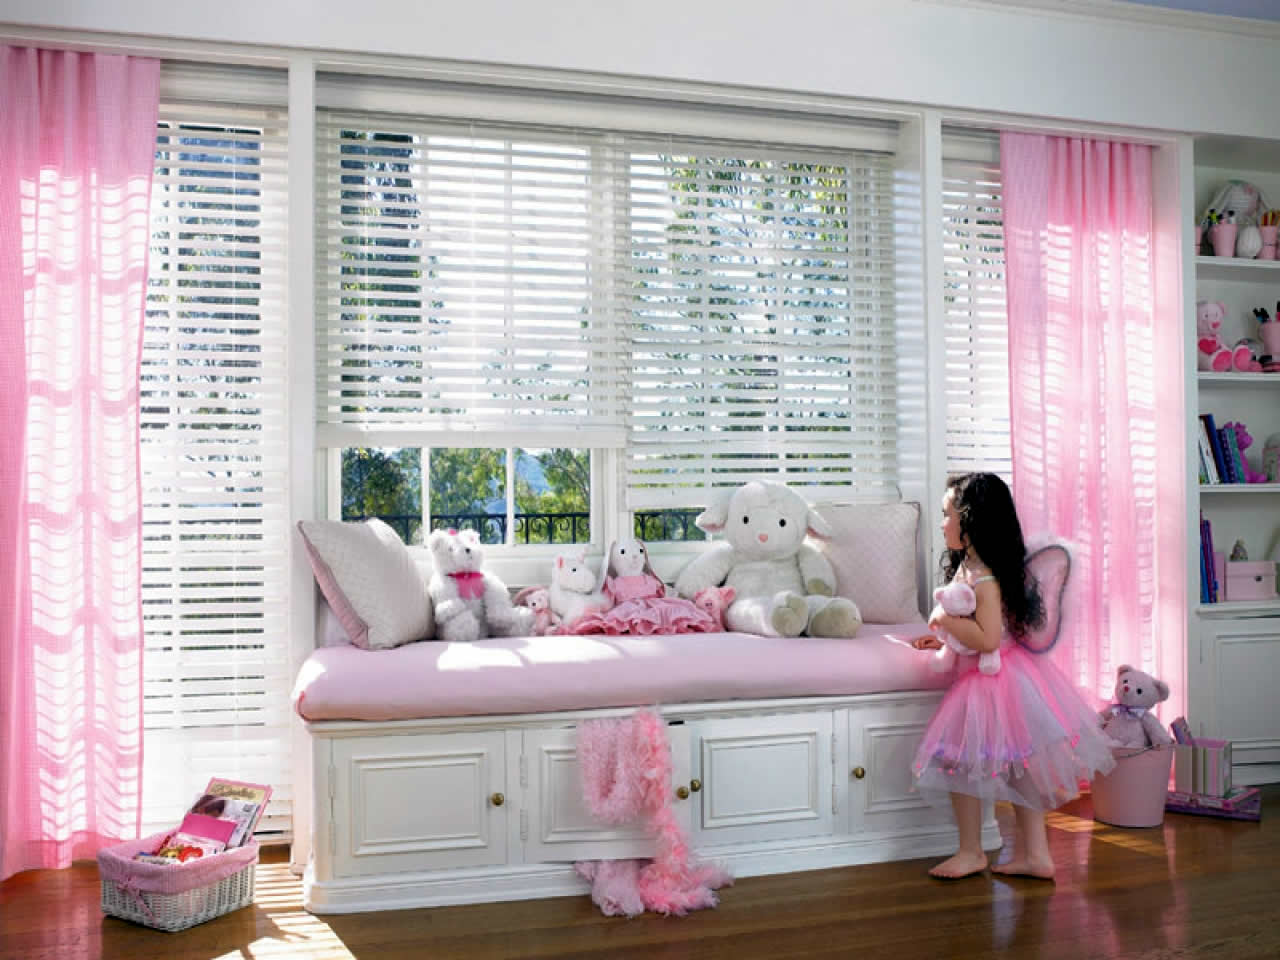 by letting enough light intoyour child's bedroom helps them stay more alert and awake during the day